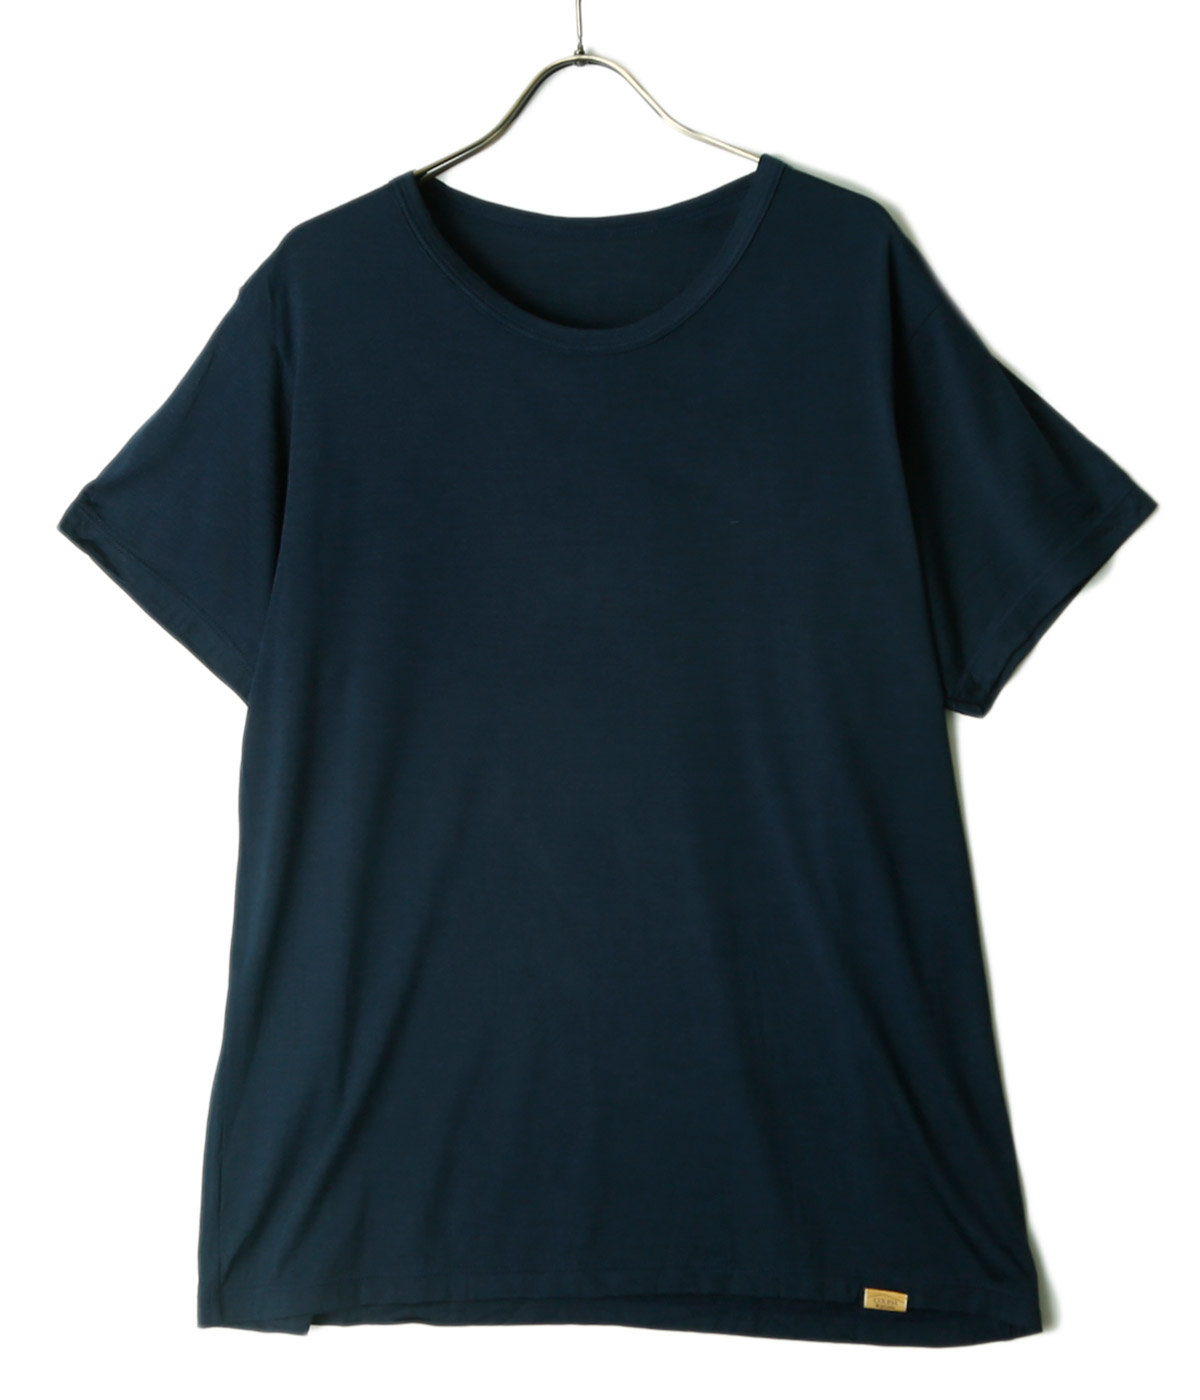 Washble Silk Tee